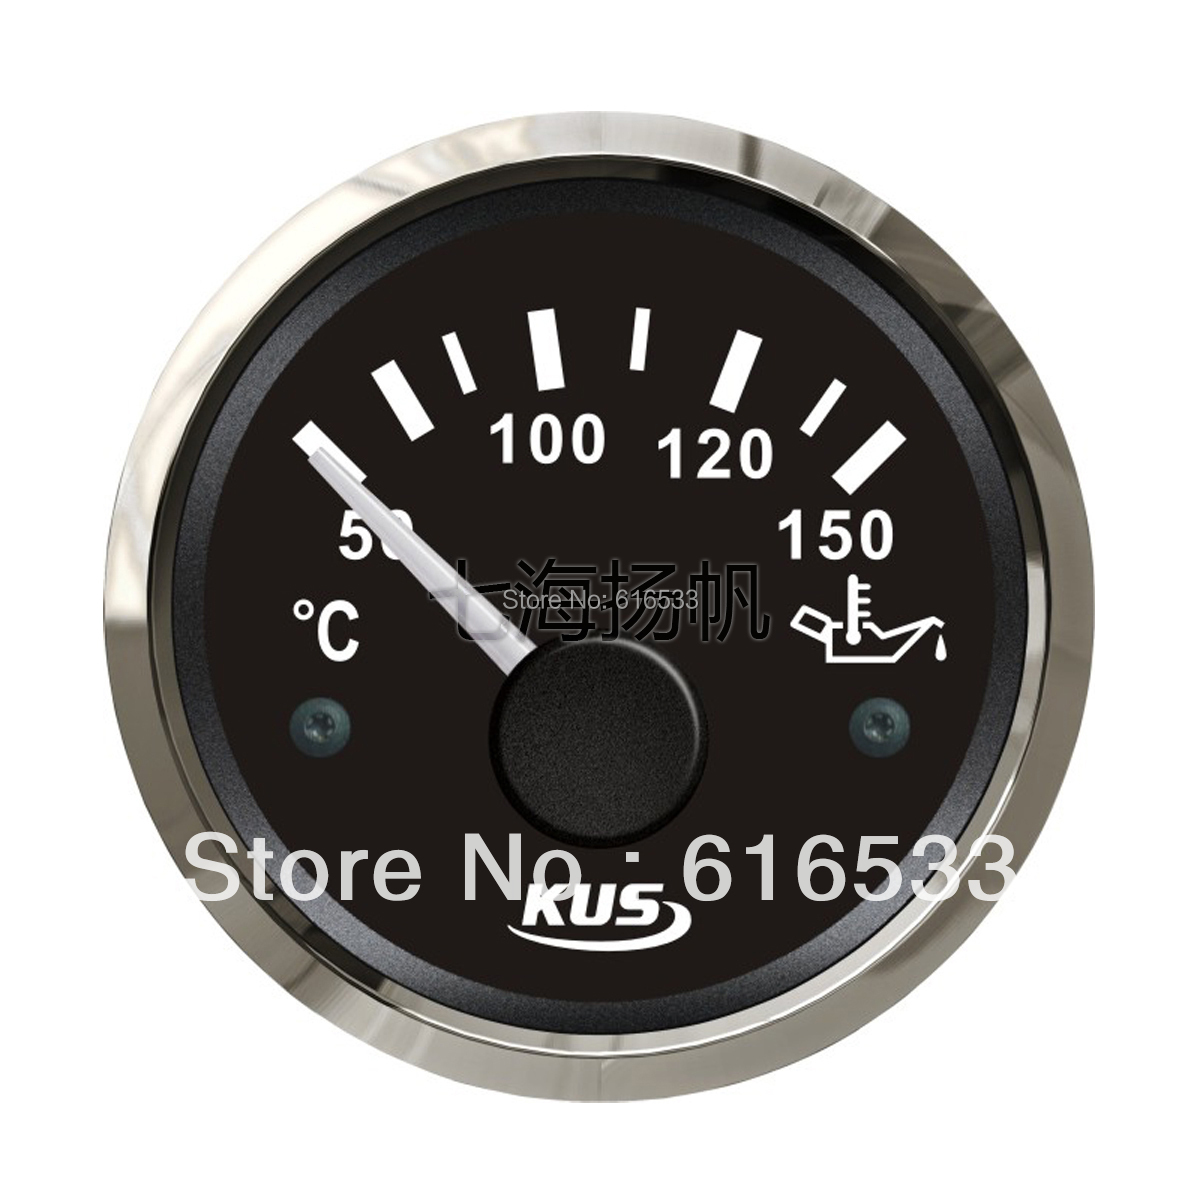 52mm oil temperature gauge for vehienlar rv marine general yacht motor boat accessory 1pc (50-150)(China (Mainland))